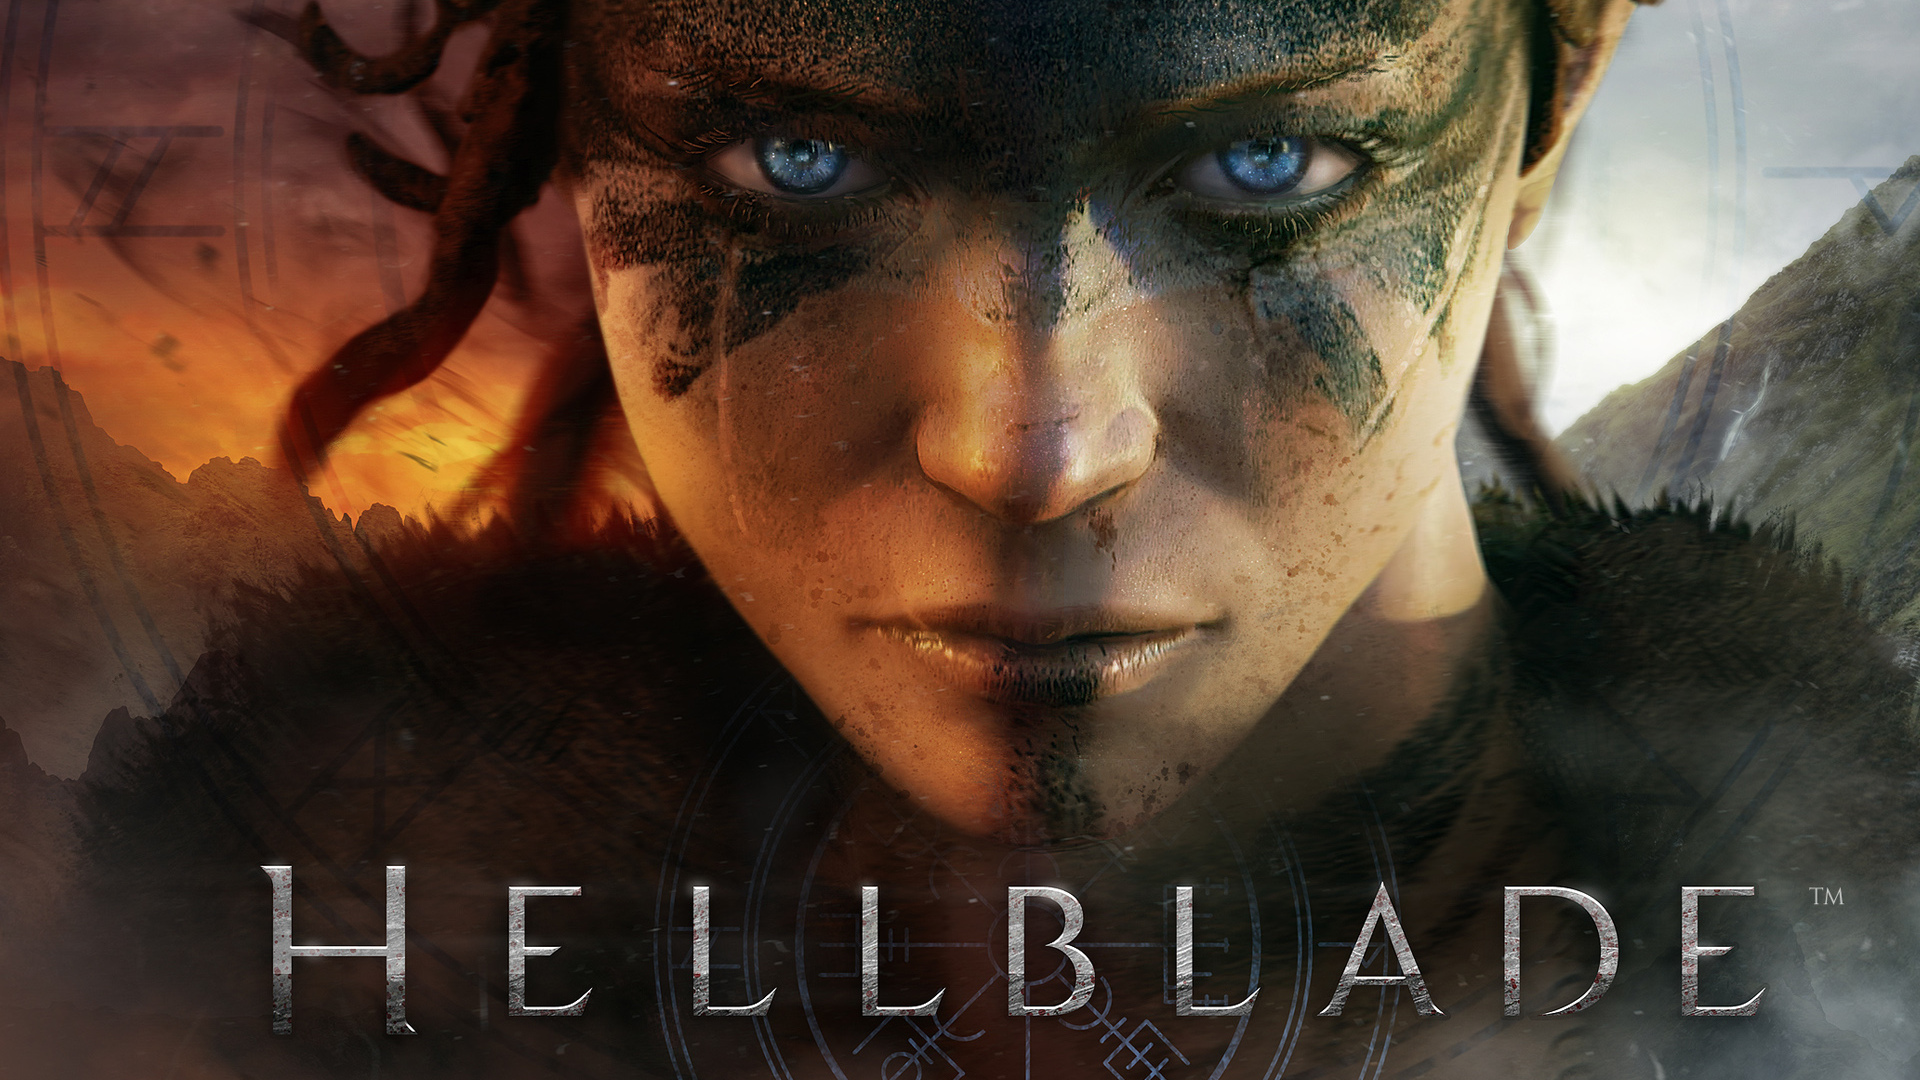 1920x1080 Hellblade Ps4 Game Laptop Full Hd 1080p Hd 4k Wallpapers Images Backgrounds Photos And Pictures